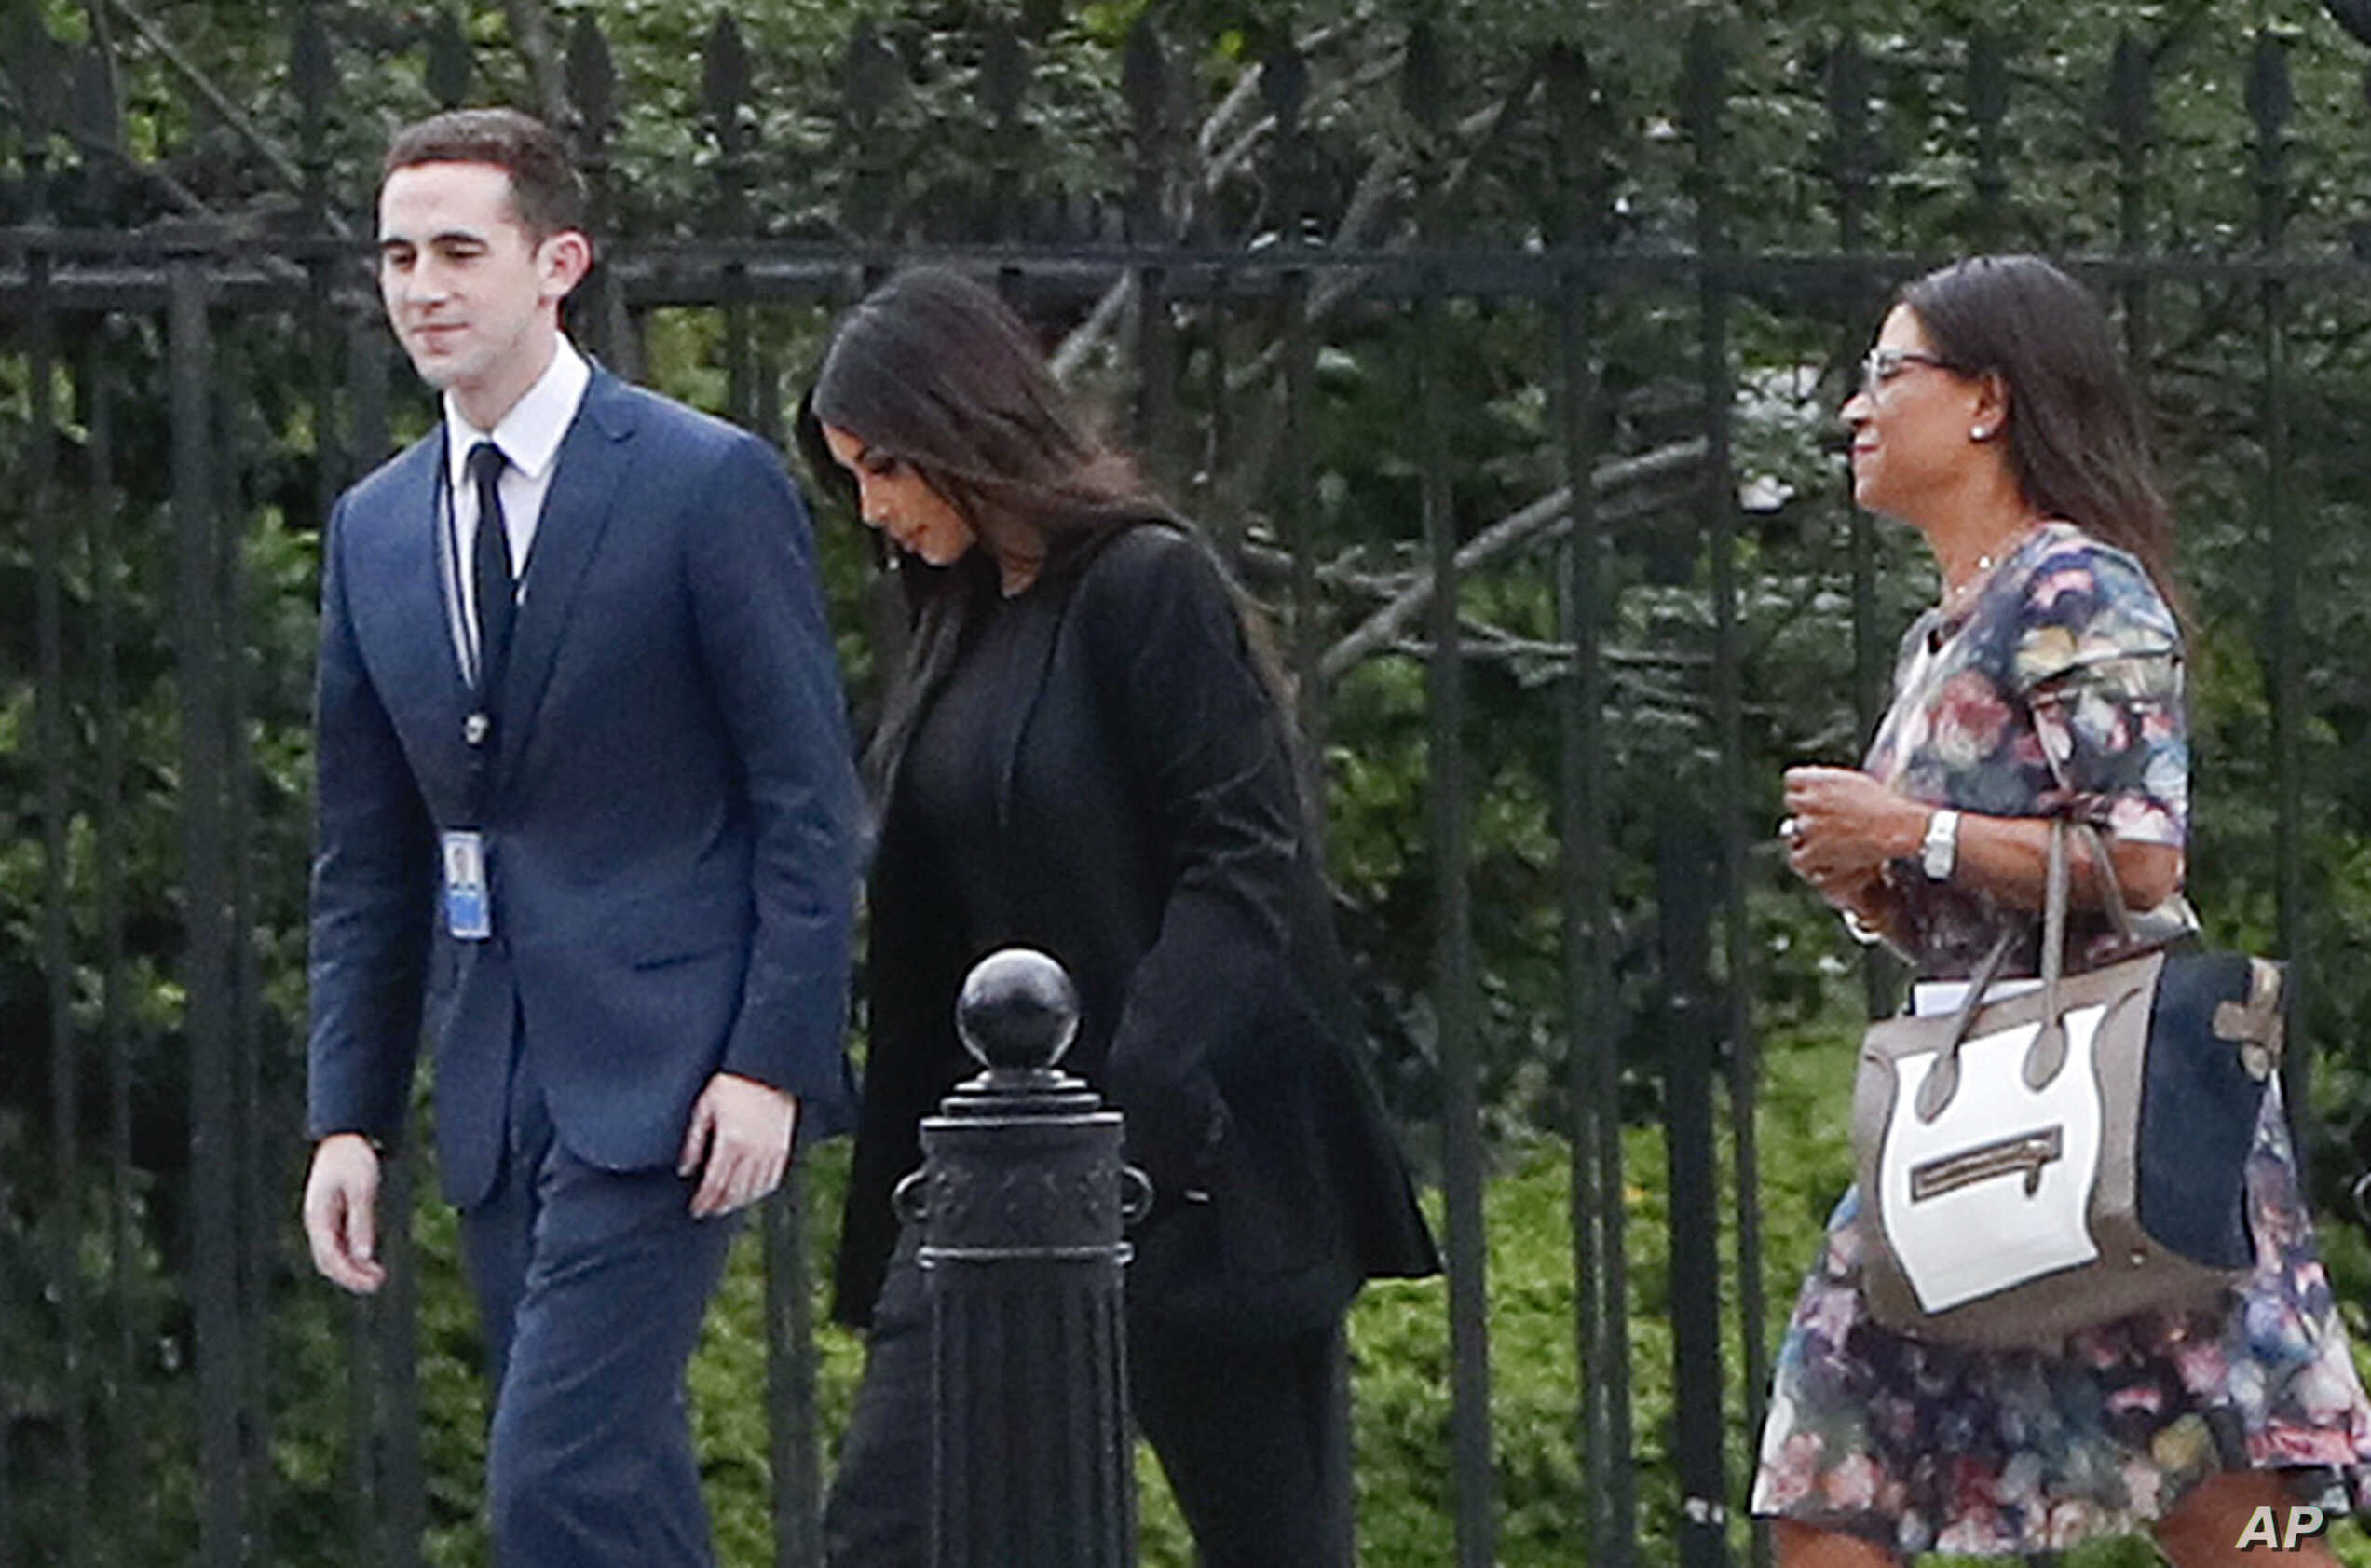 FILE - Kim Kardashian, center, arrives with her attorney Shawn Chapman Holley at the security entrance of the White House in Washington, May 30, 2018.